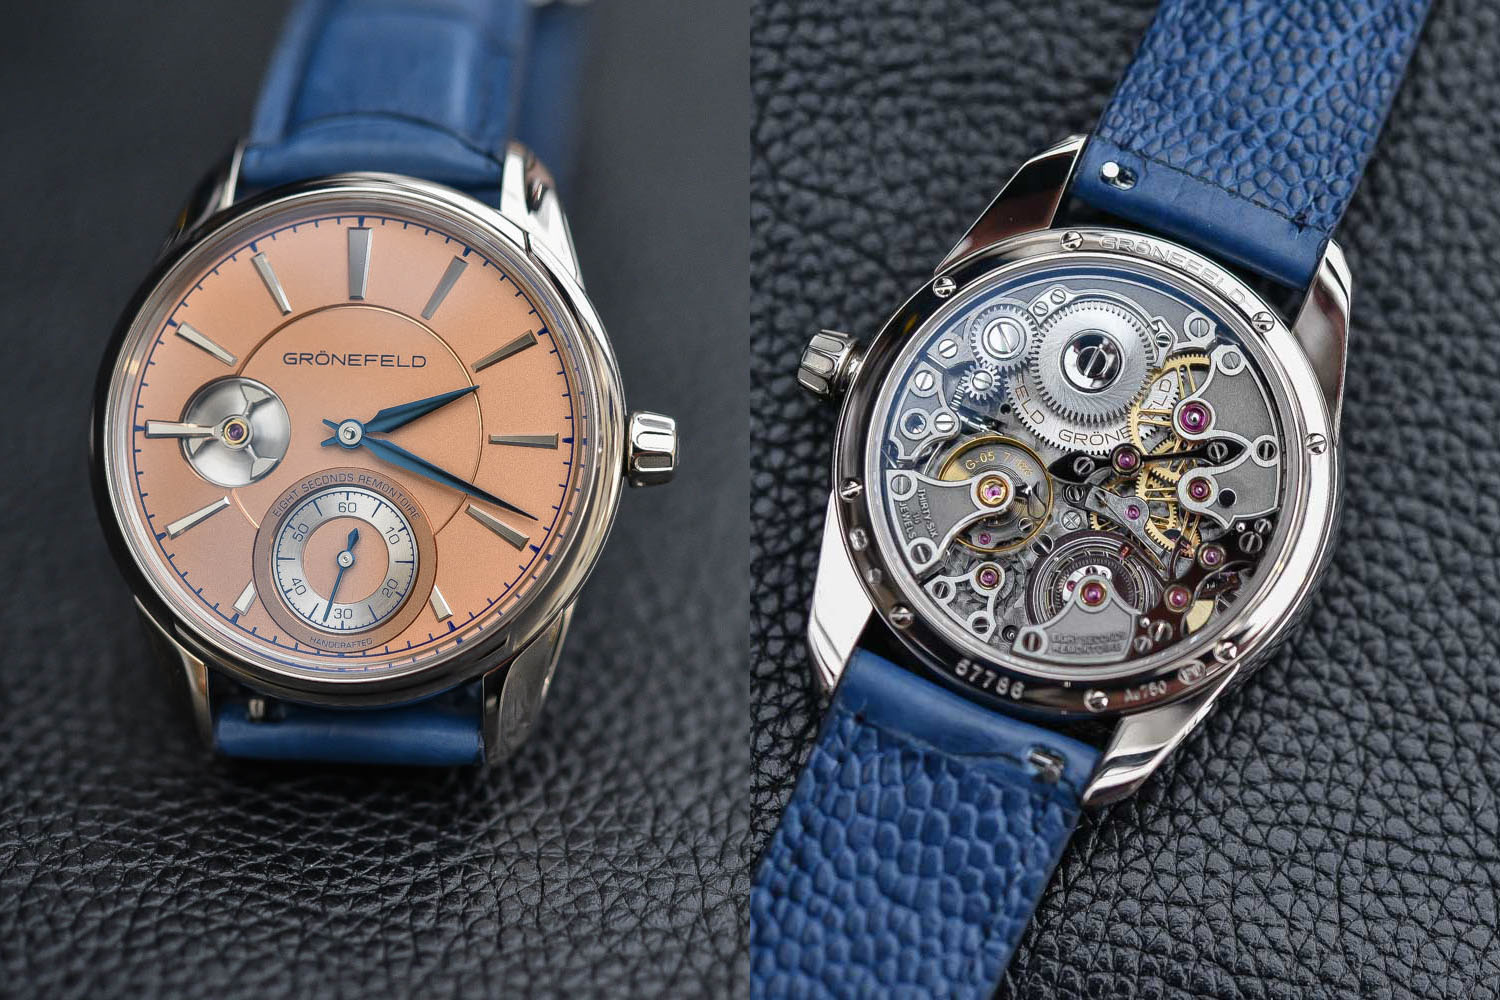 Gronefeld 1941 Remontoire - Top 5 Watches from Baselworld 2016